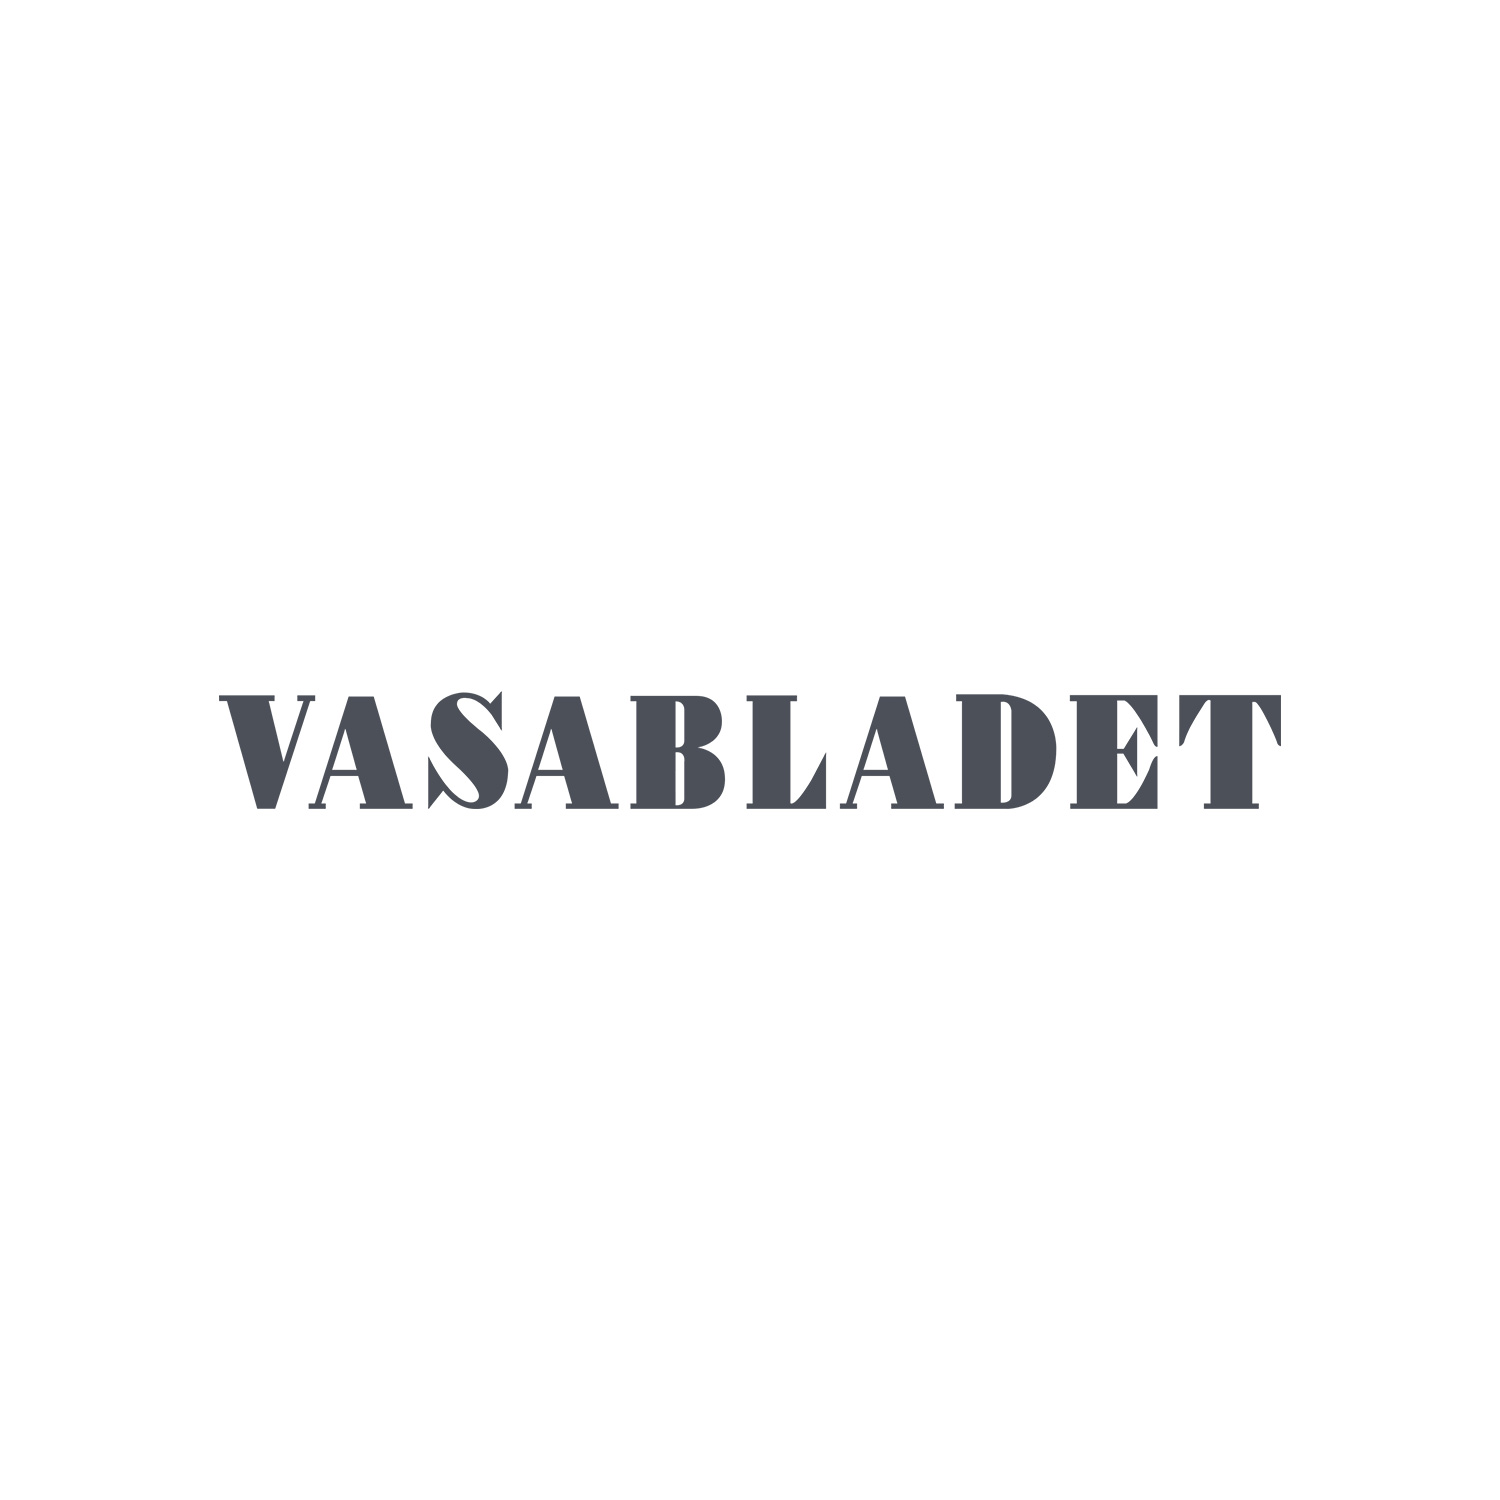 Vasabladet, 13 July 2018   View Article